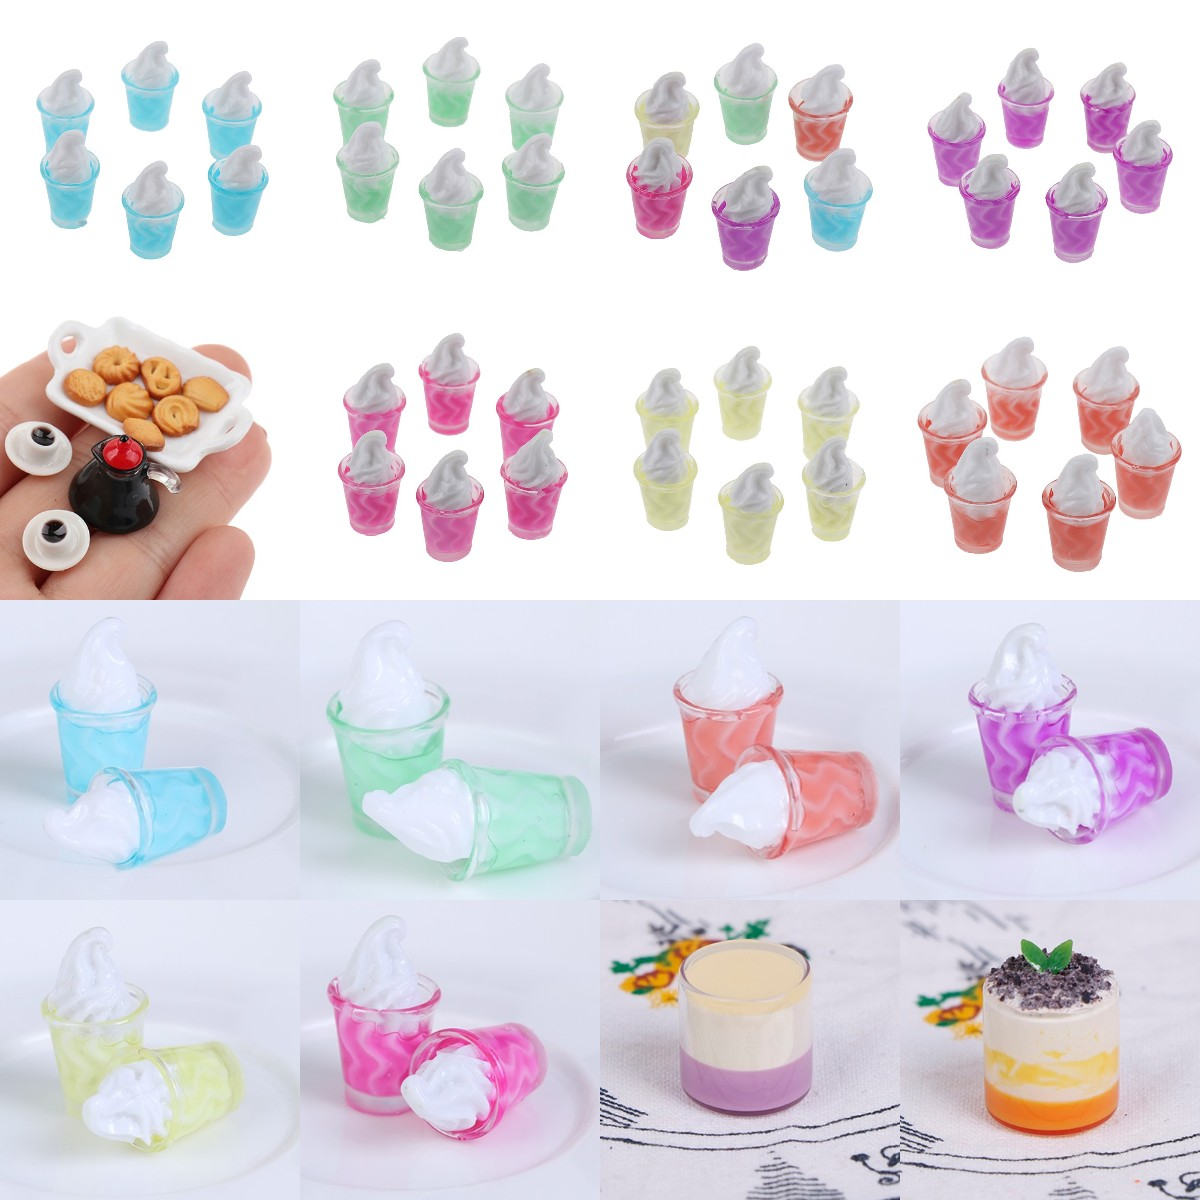 1/2/3/5/7/10pcs 1:12 Dollhouse Miniature Mini Food Drinks Bottles Model Dolls Kitchen Accessories Pretend Play Toy Gifts new